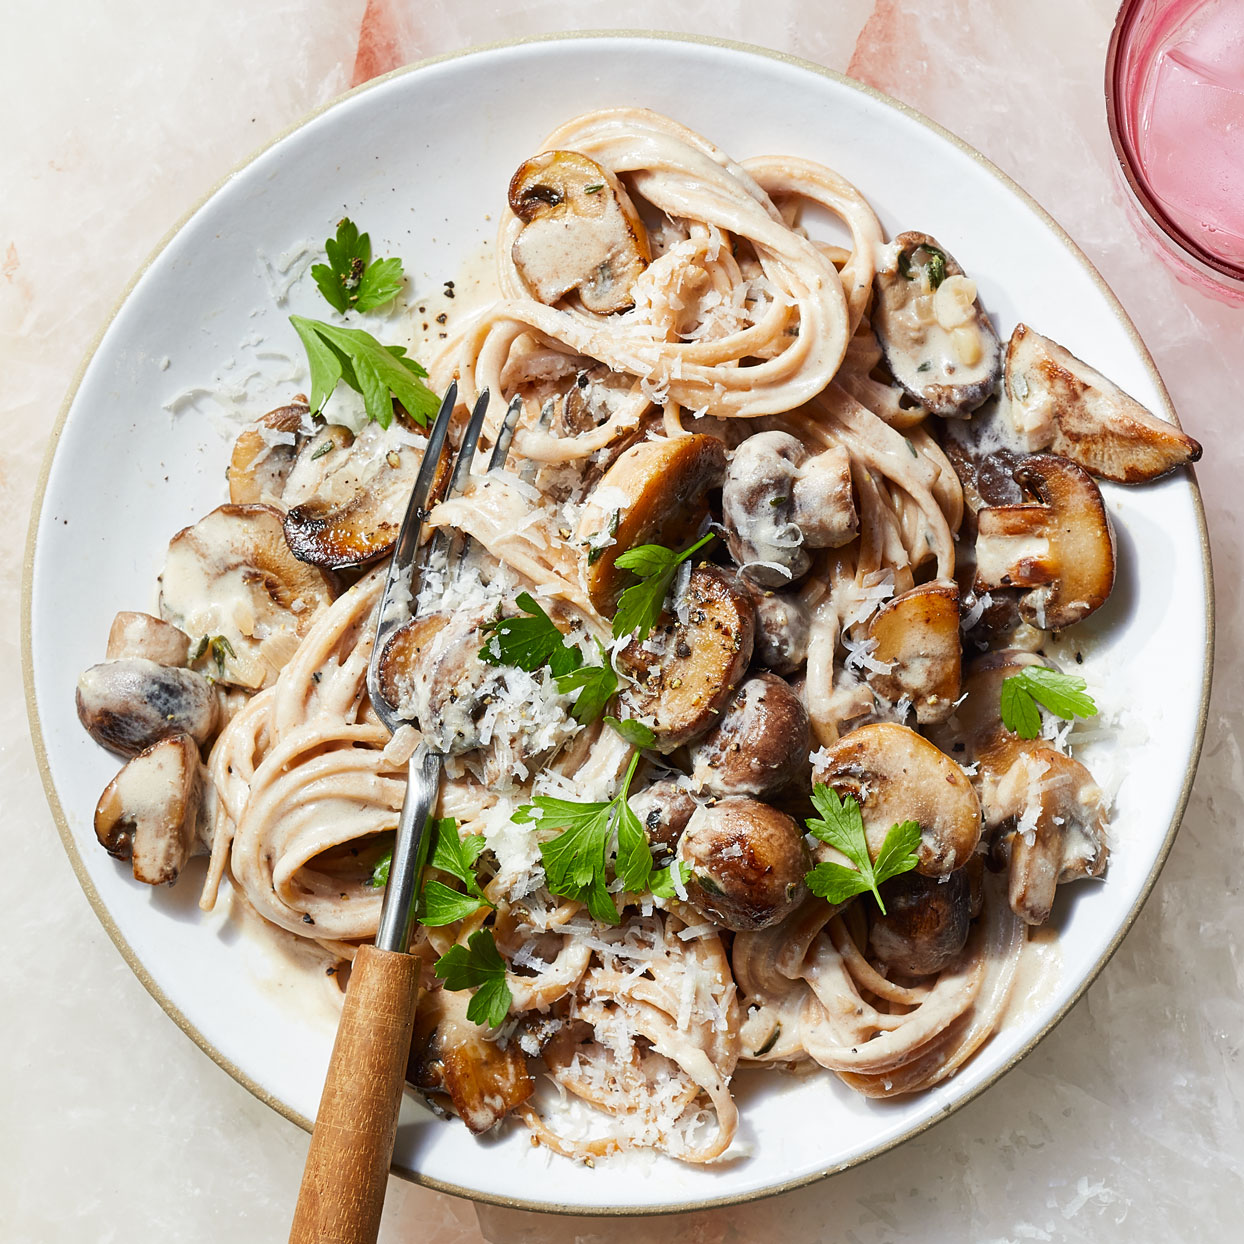 15 Recipes to Make With a Package of Mushrooms